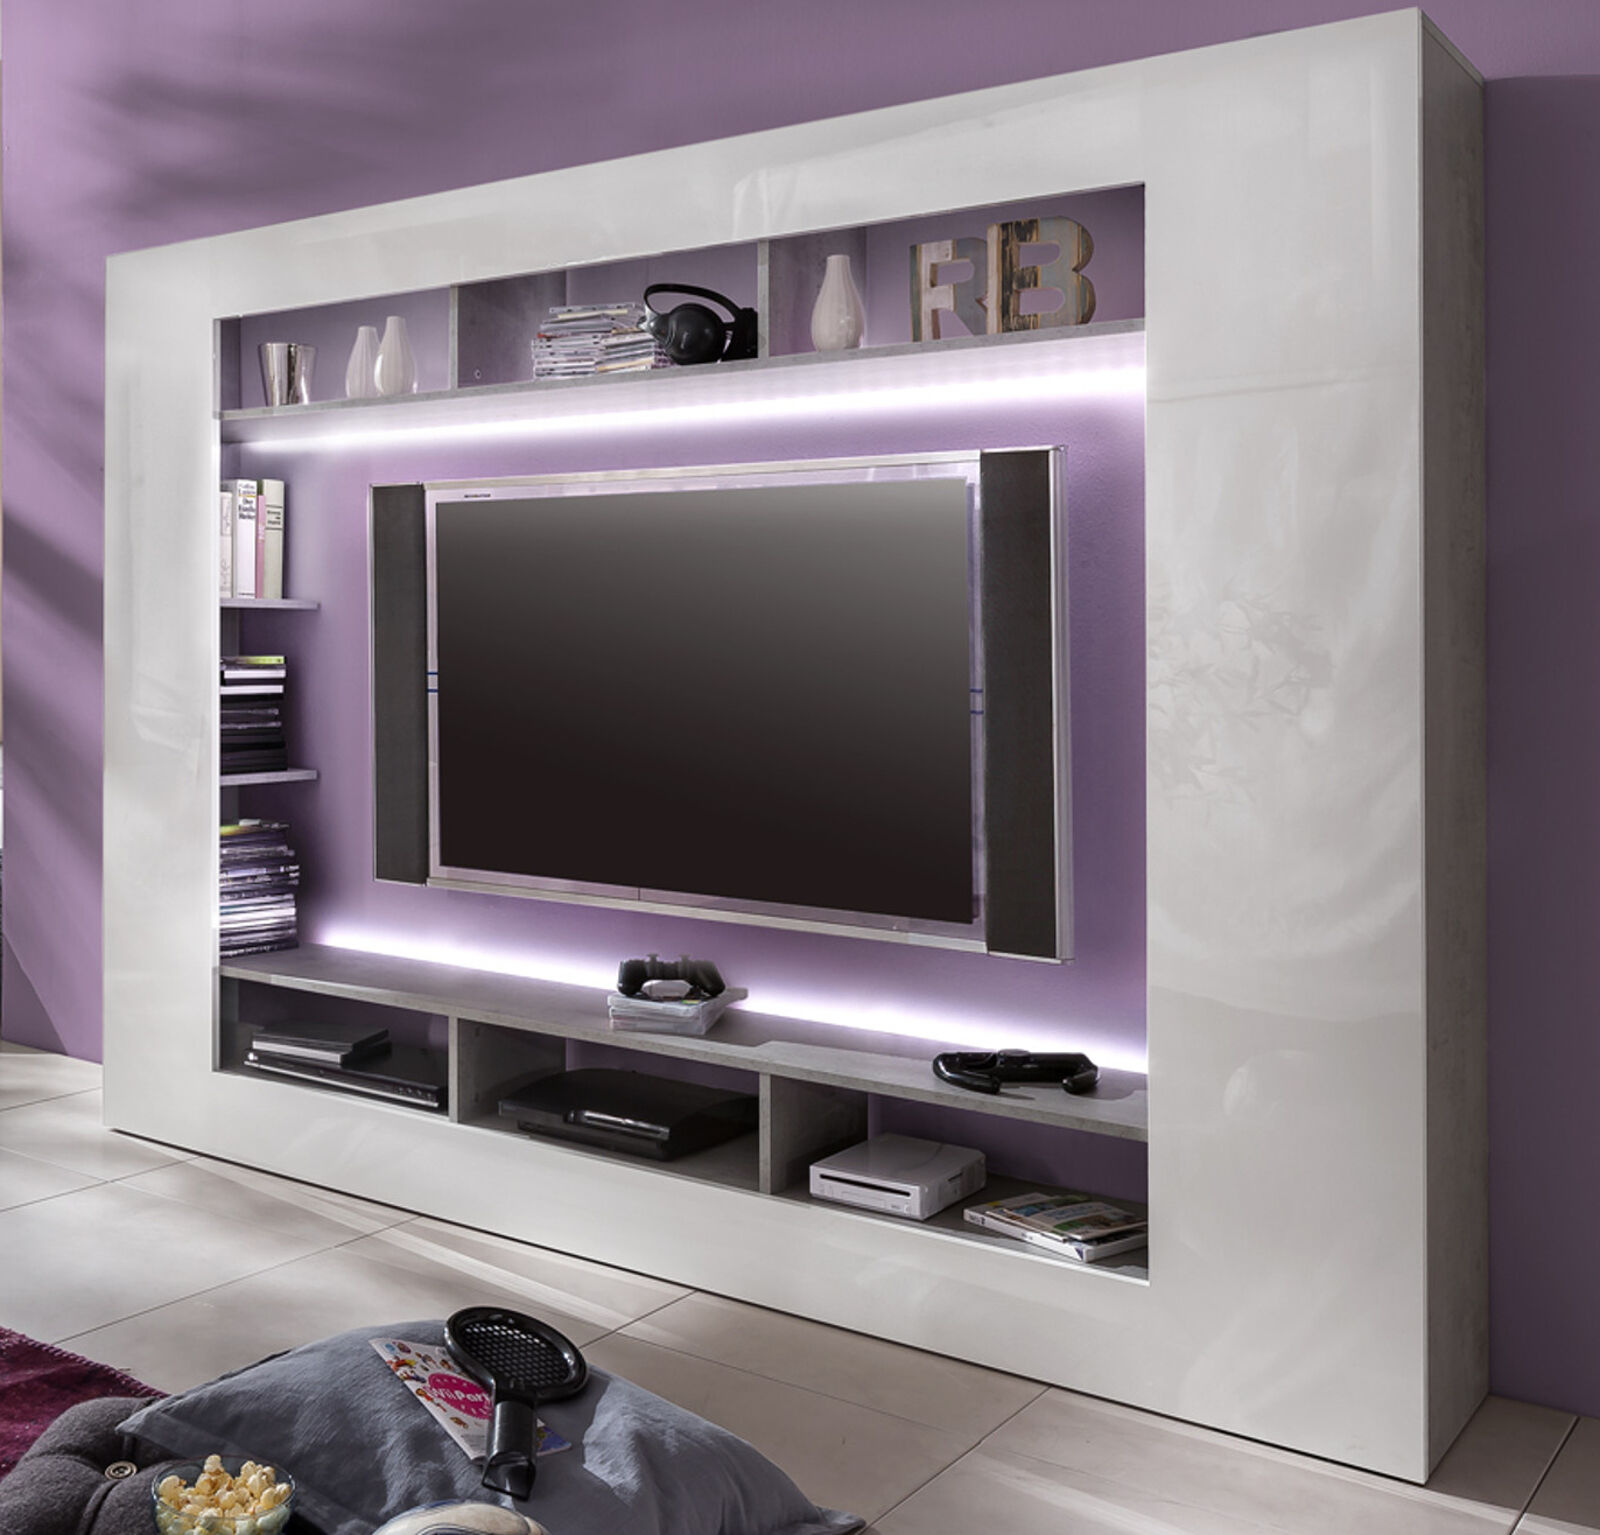 wohnwand medienwand weiss hochglanz beton design fernsehschrank tv hifi speed eur 189 99. Black Bedroom Furniture Sets. Home Design Ideas